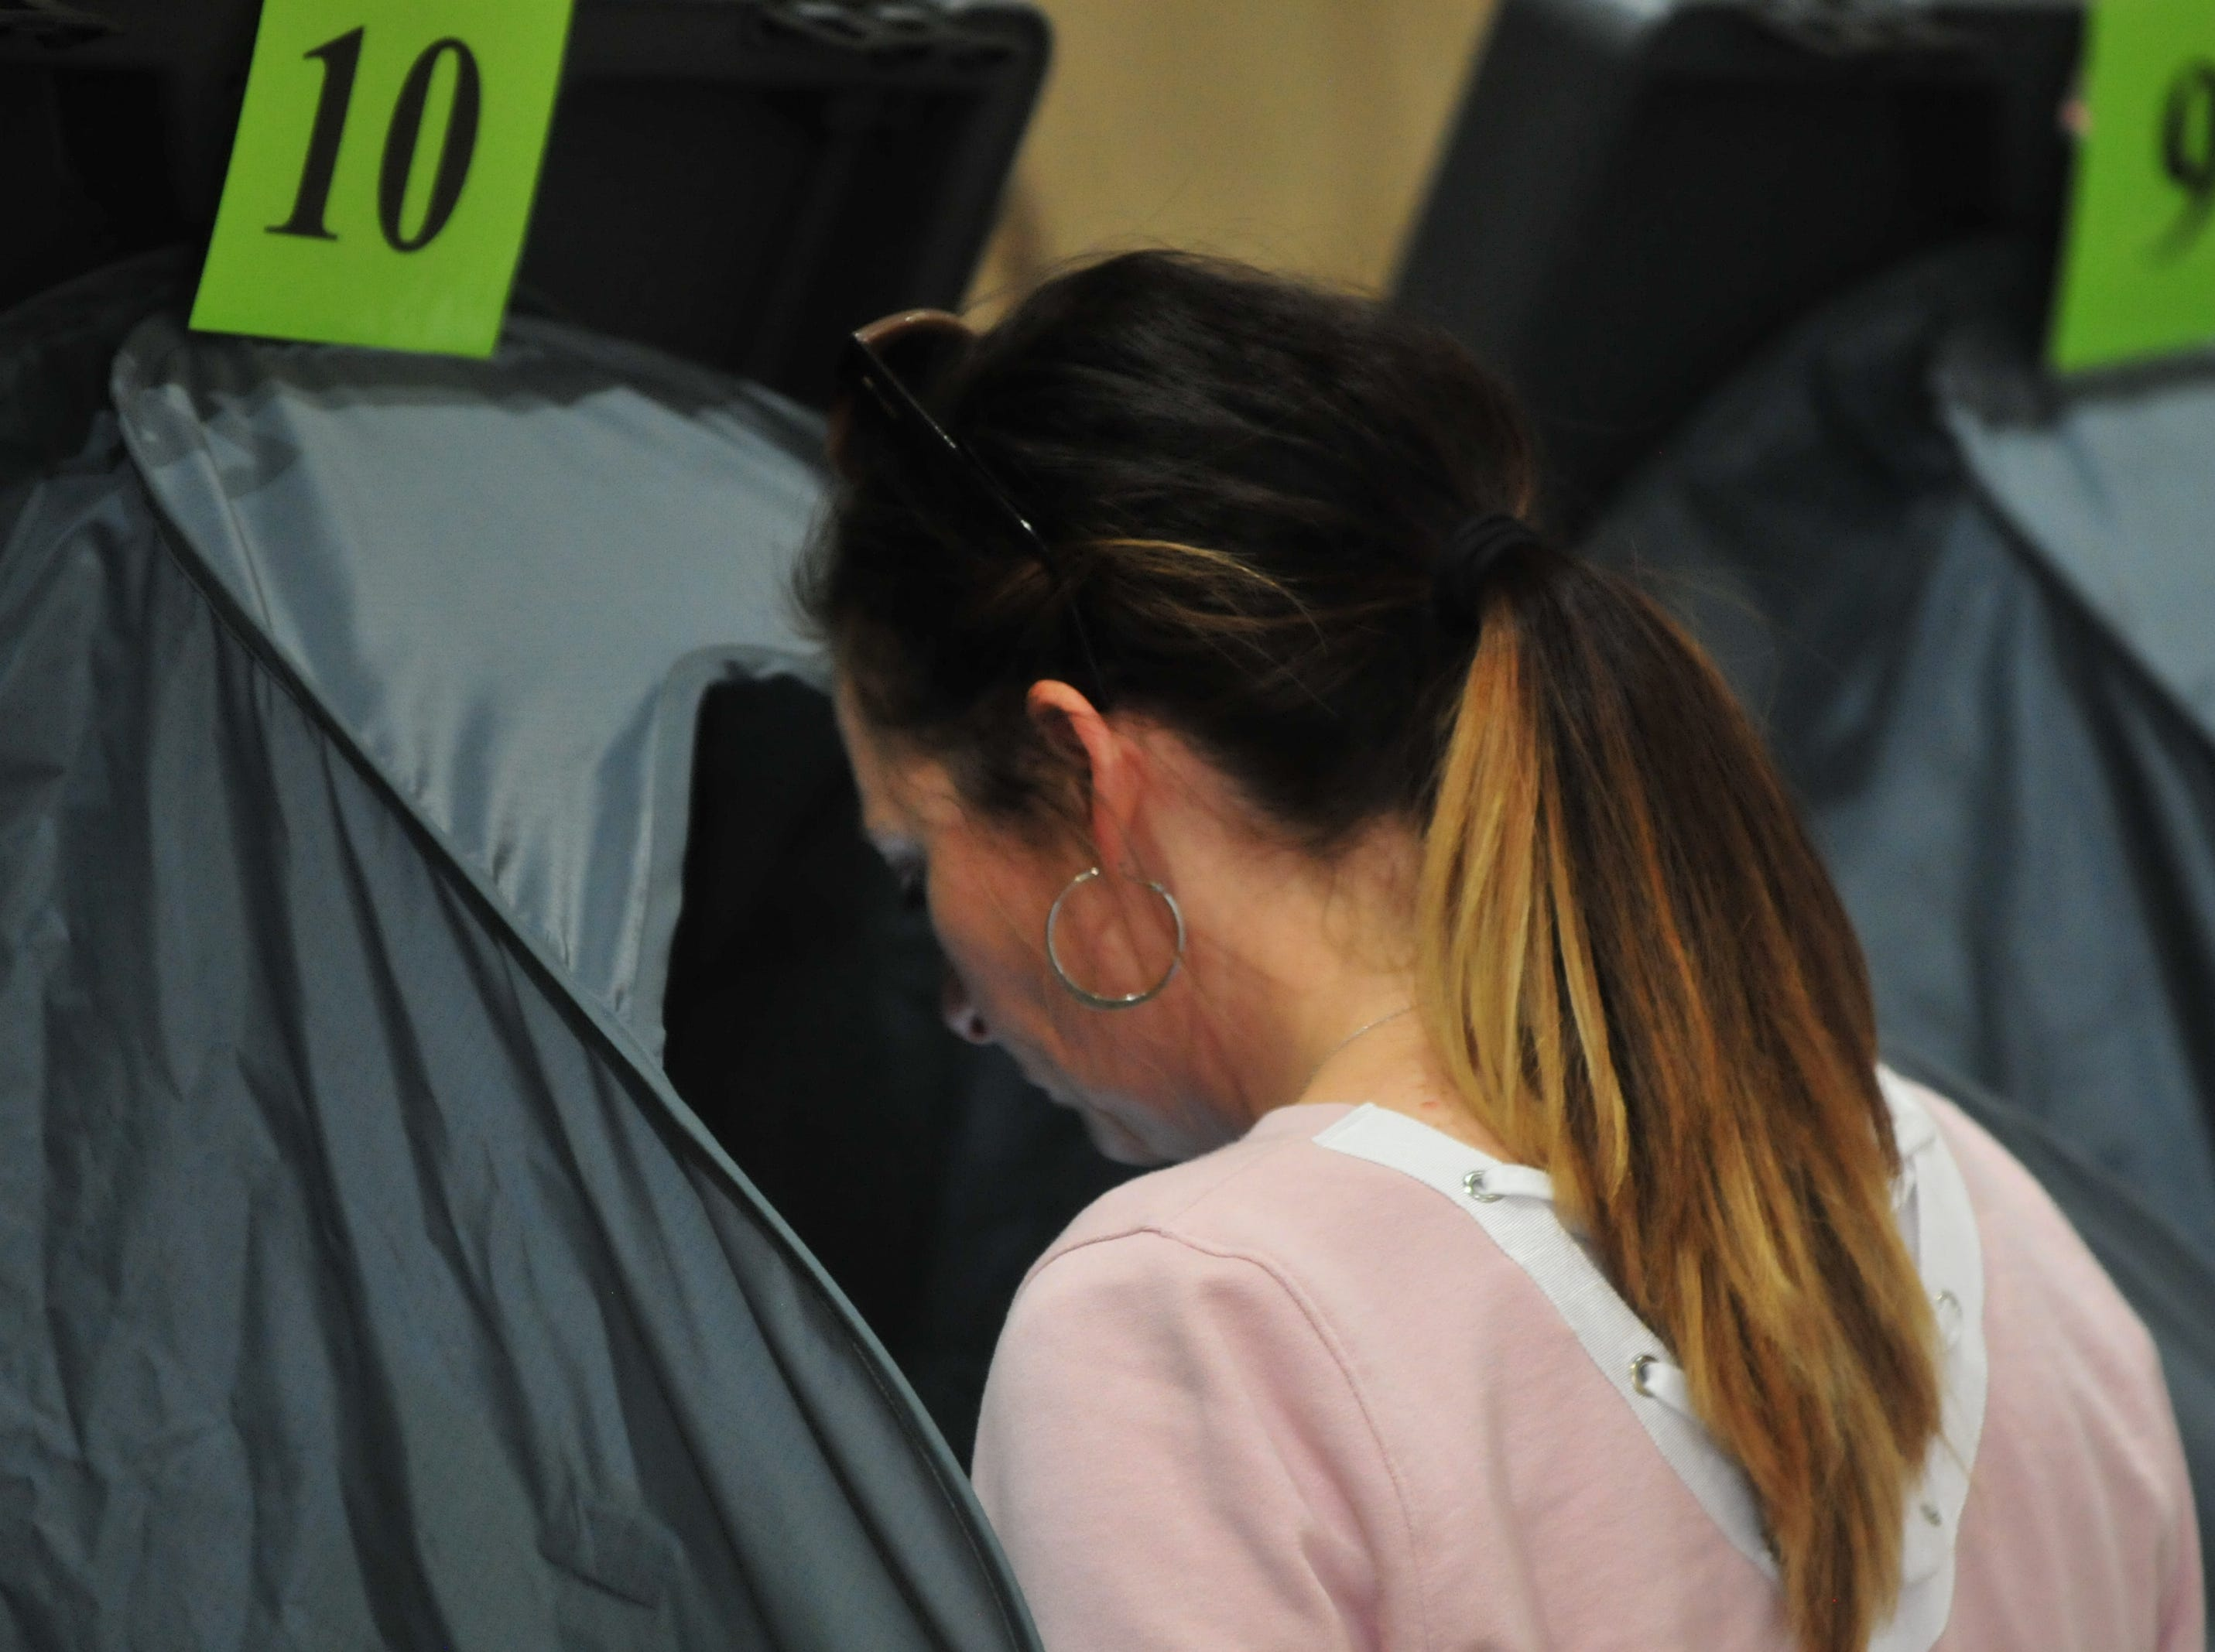 Voters cast their ballots at the Hagerstown New Testament Church vote center on Election Day, Nov. 6, 2018.